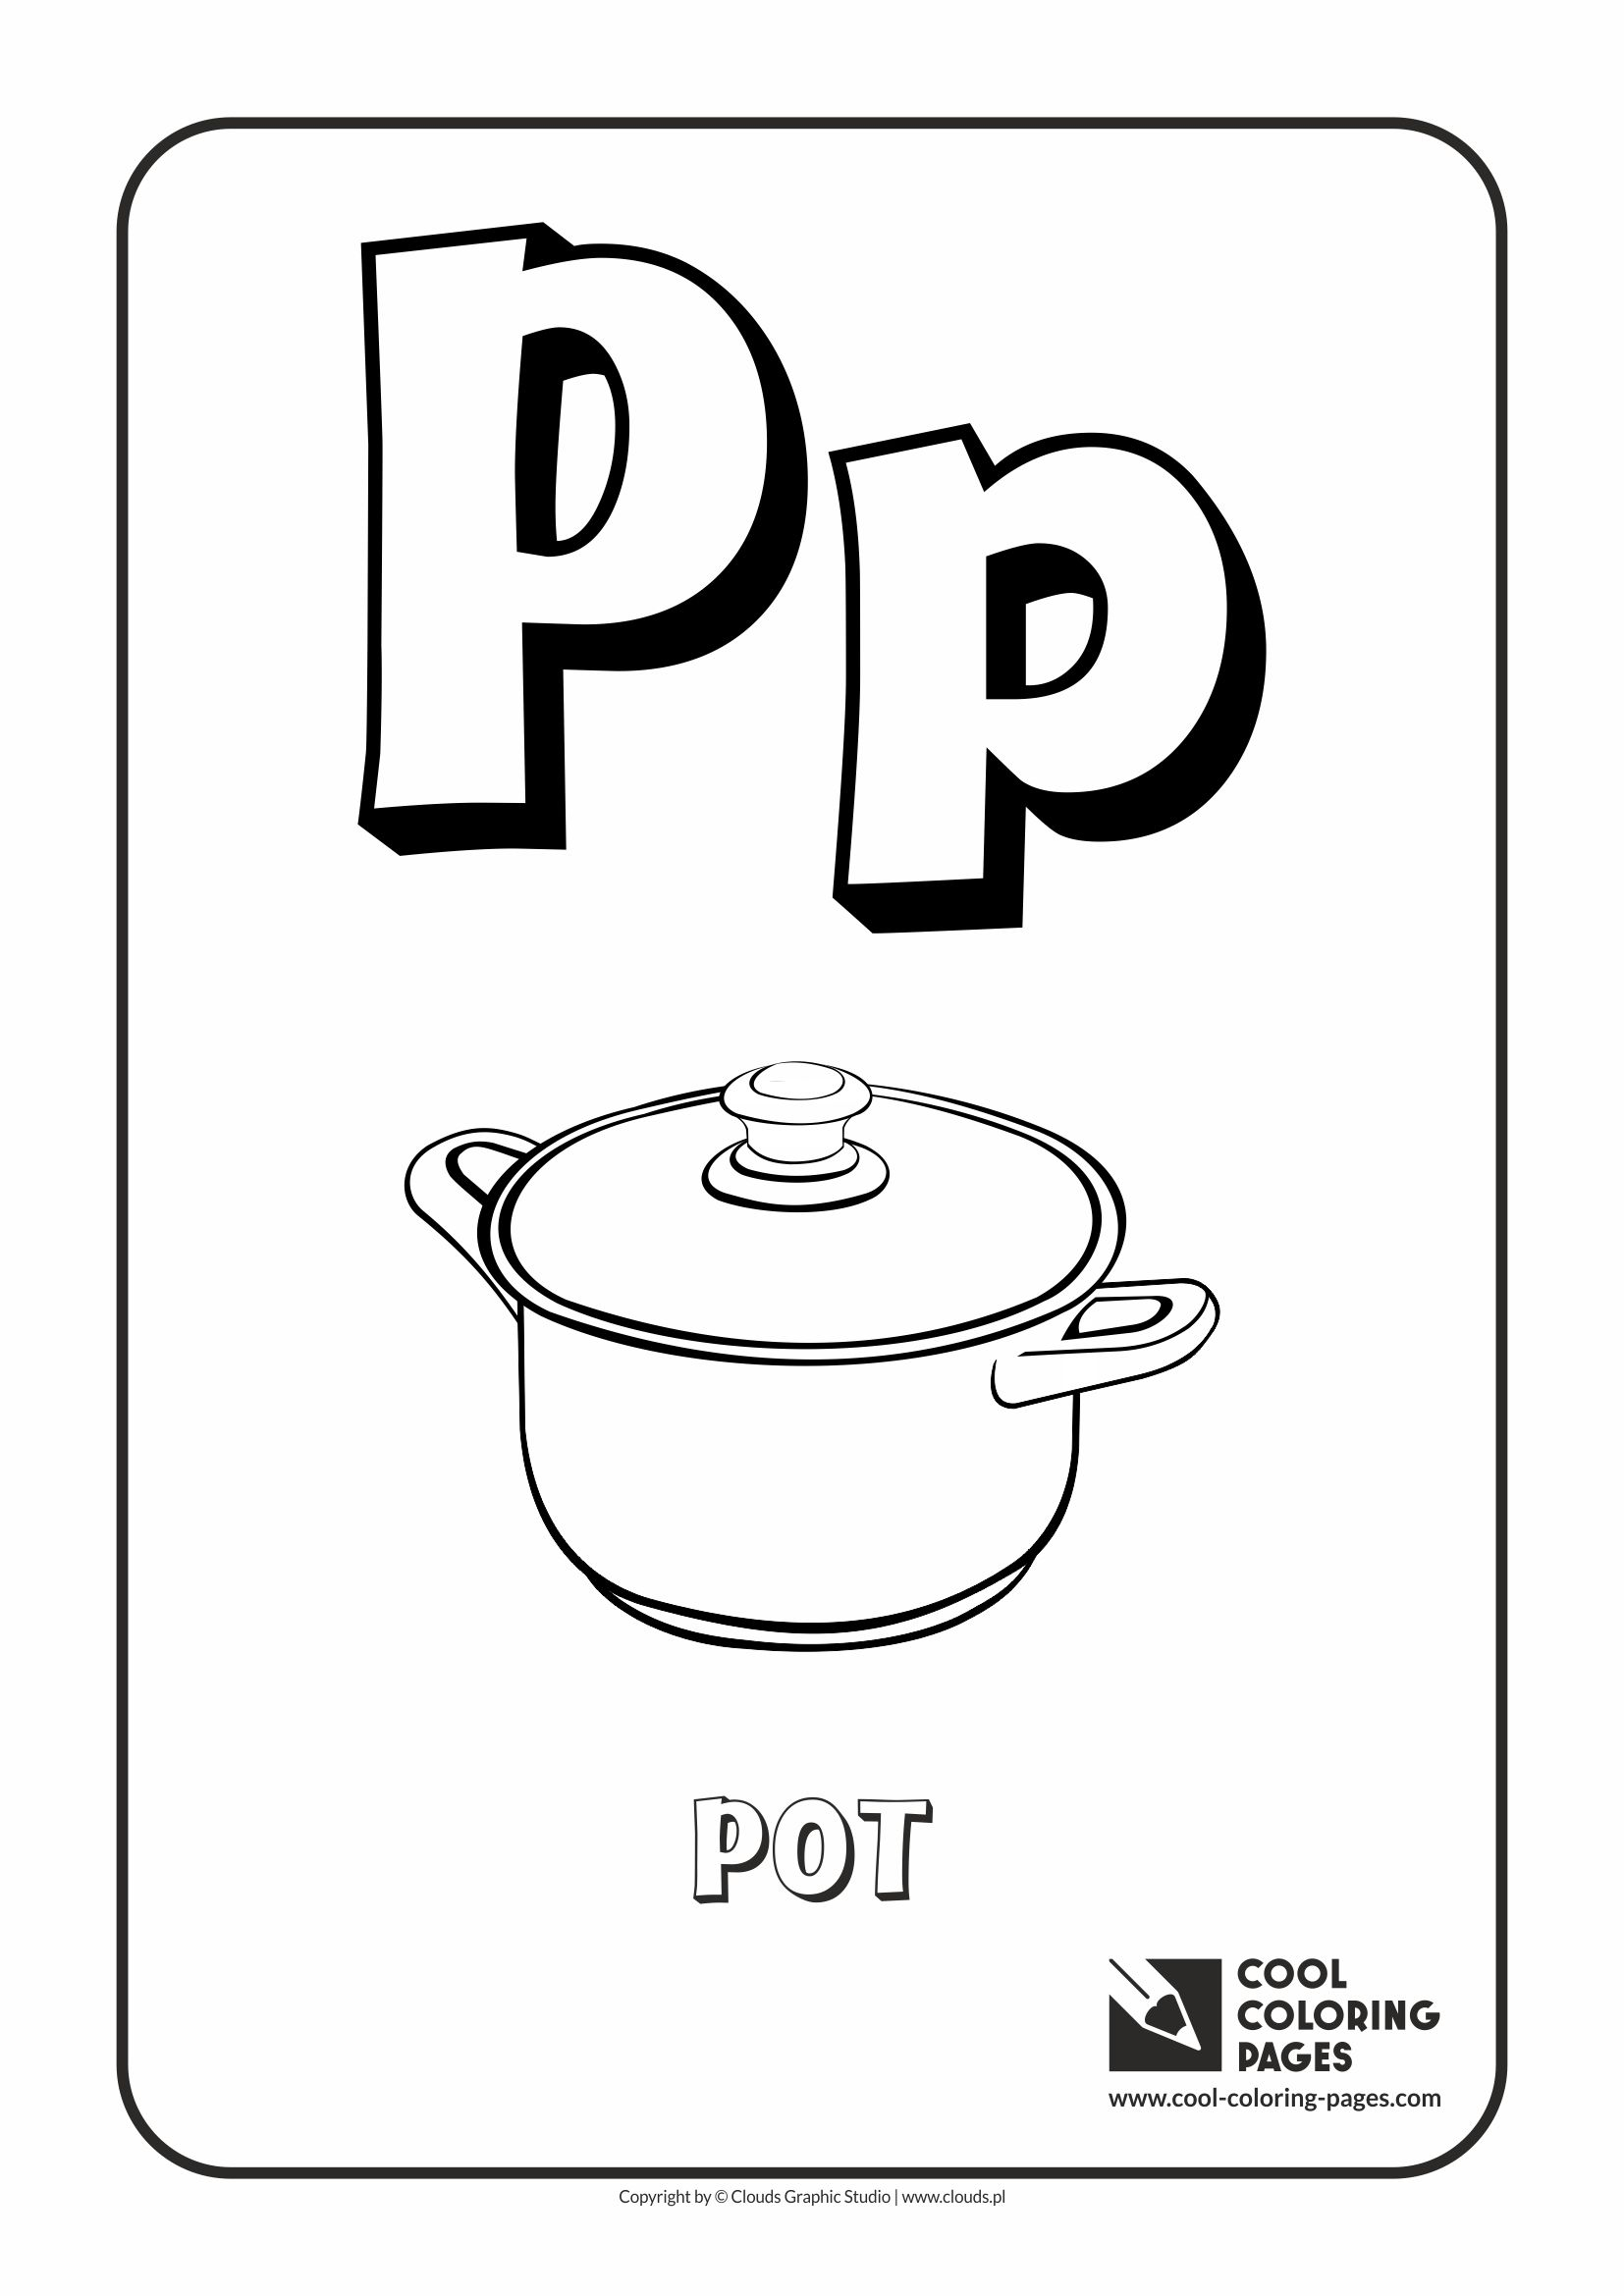 Cool Coloring Pages Letter P